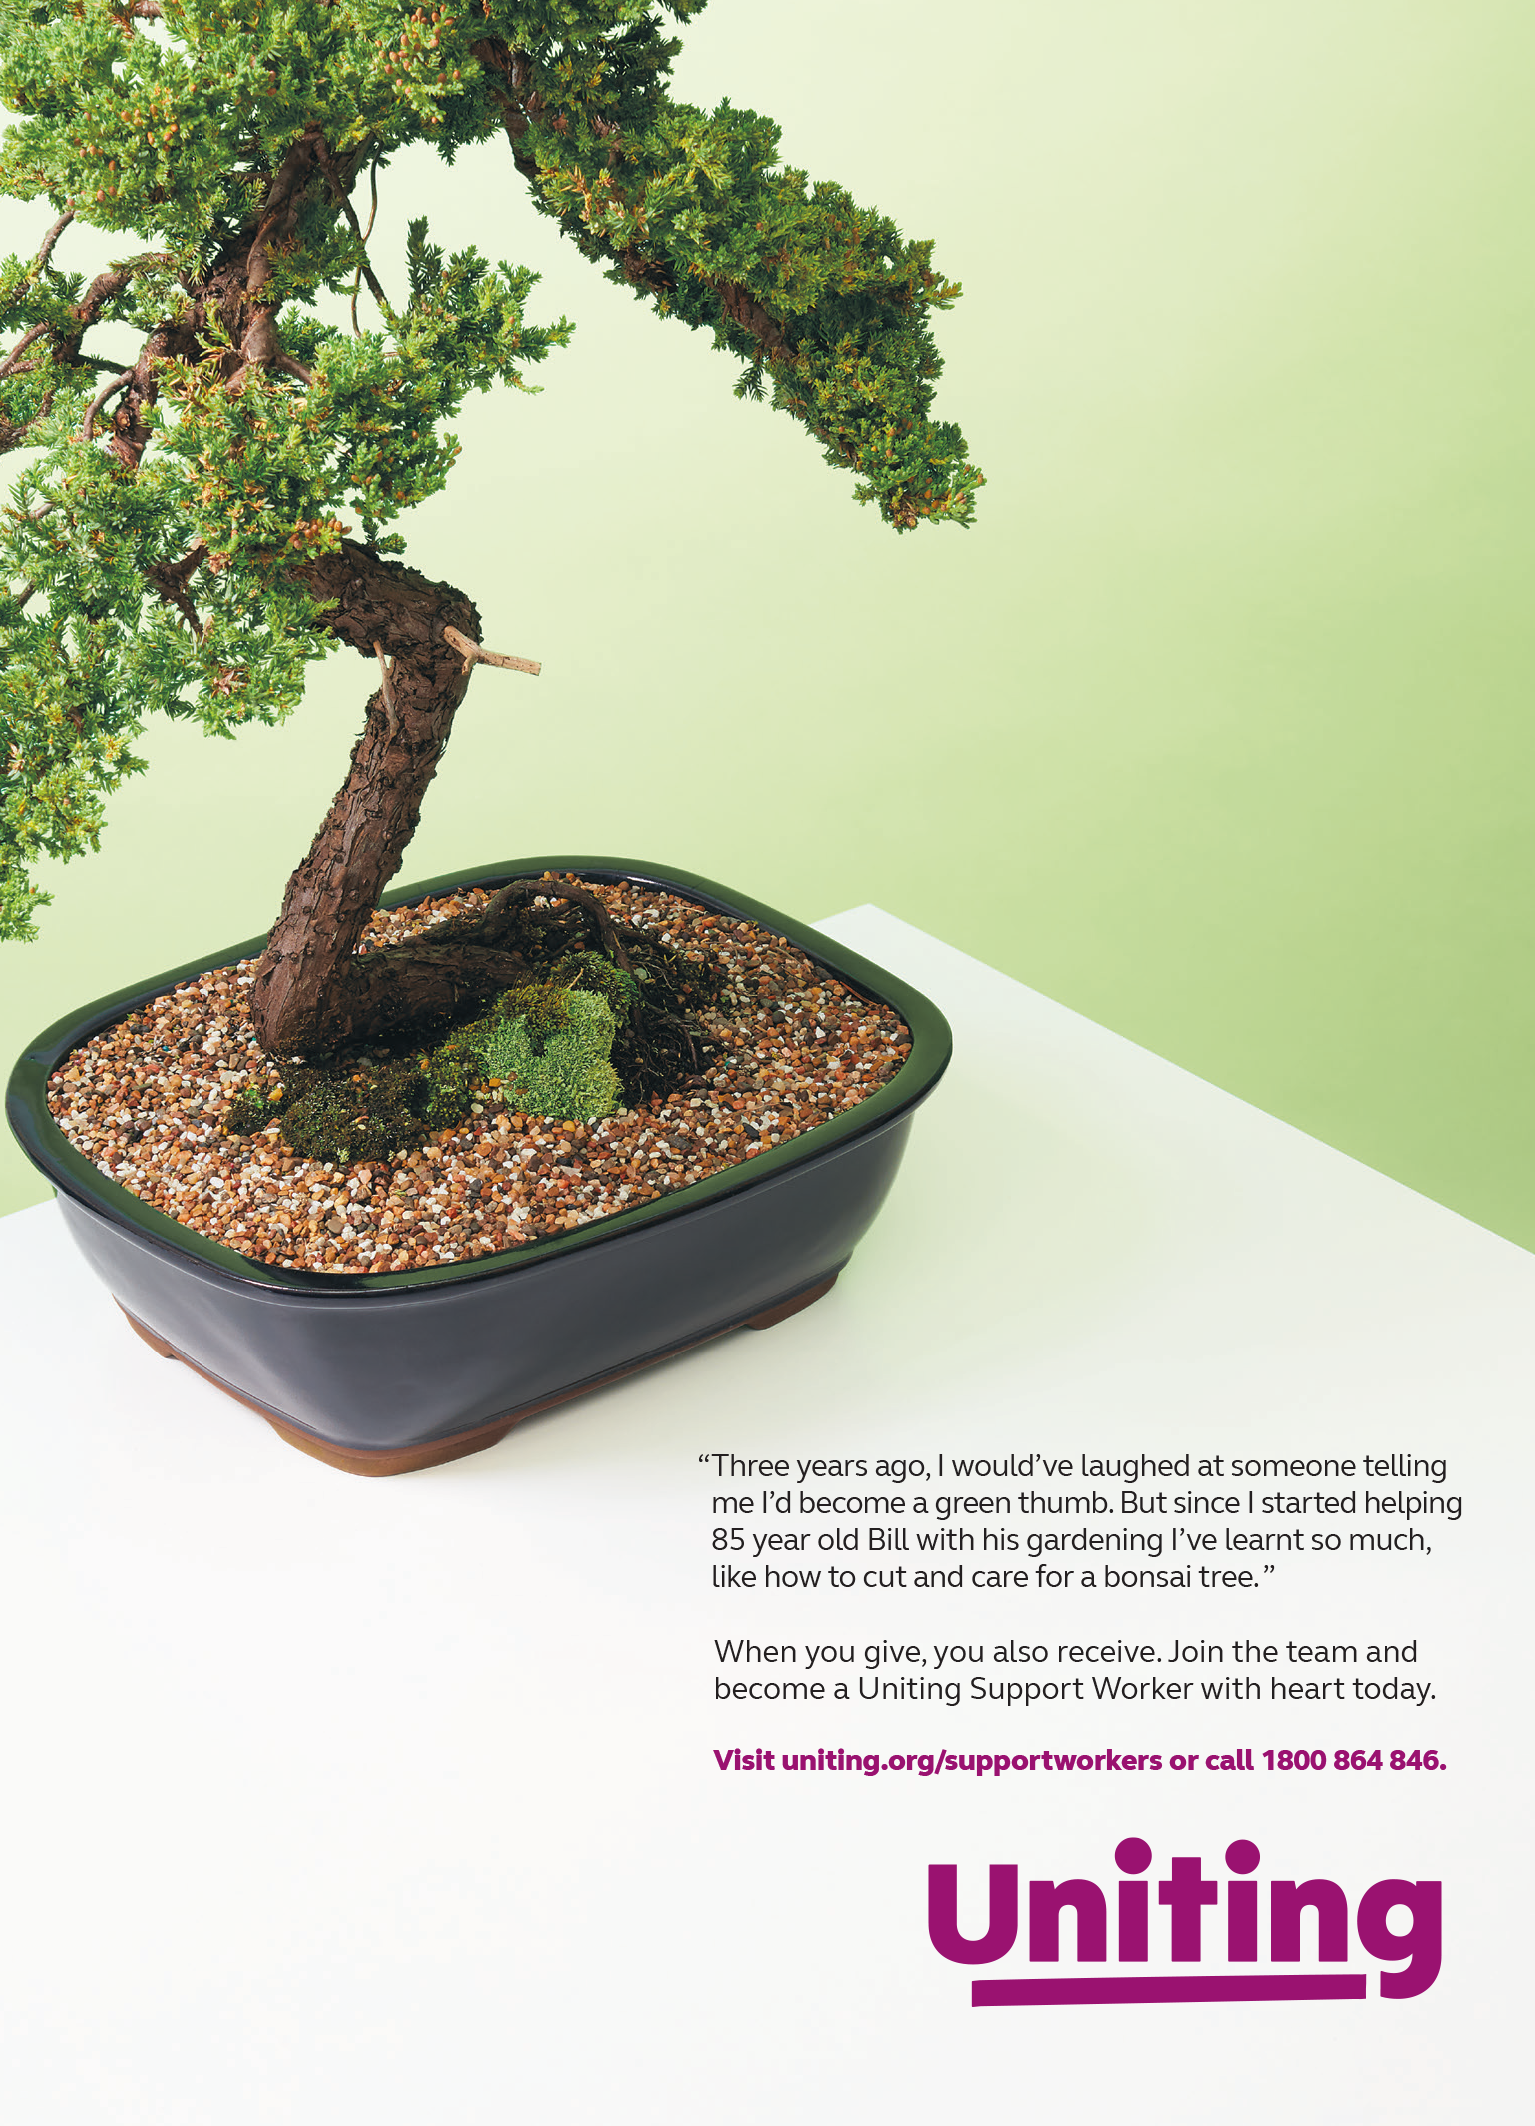 UNIDIG0018_Press_180x130_Final_Bonsai.png